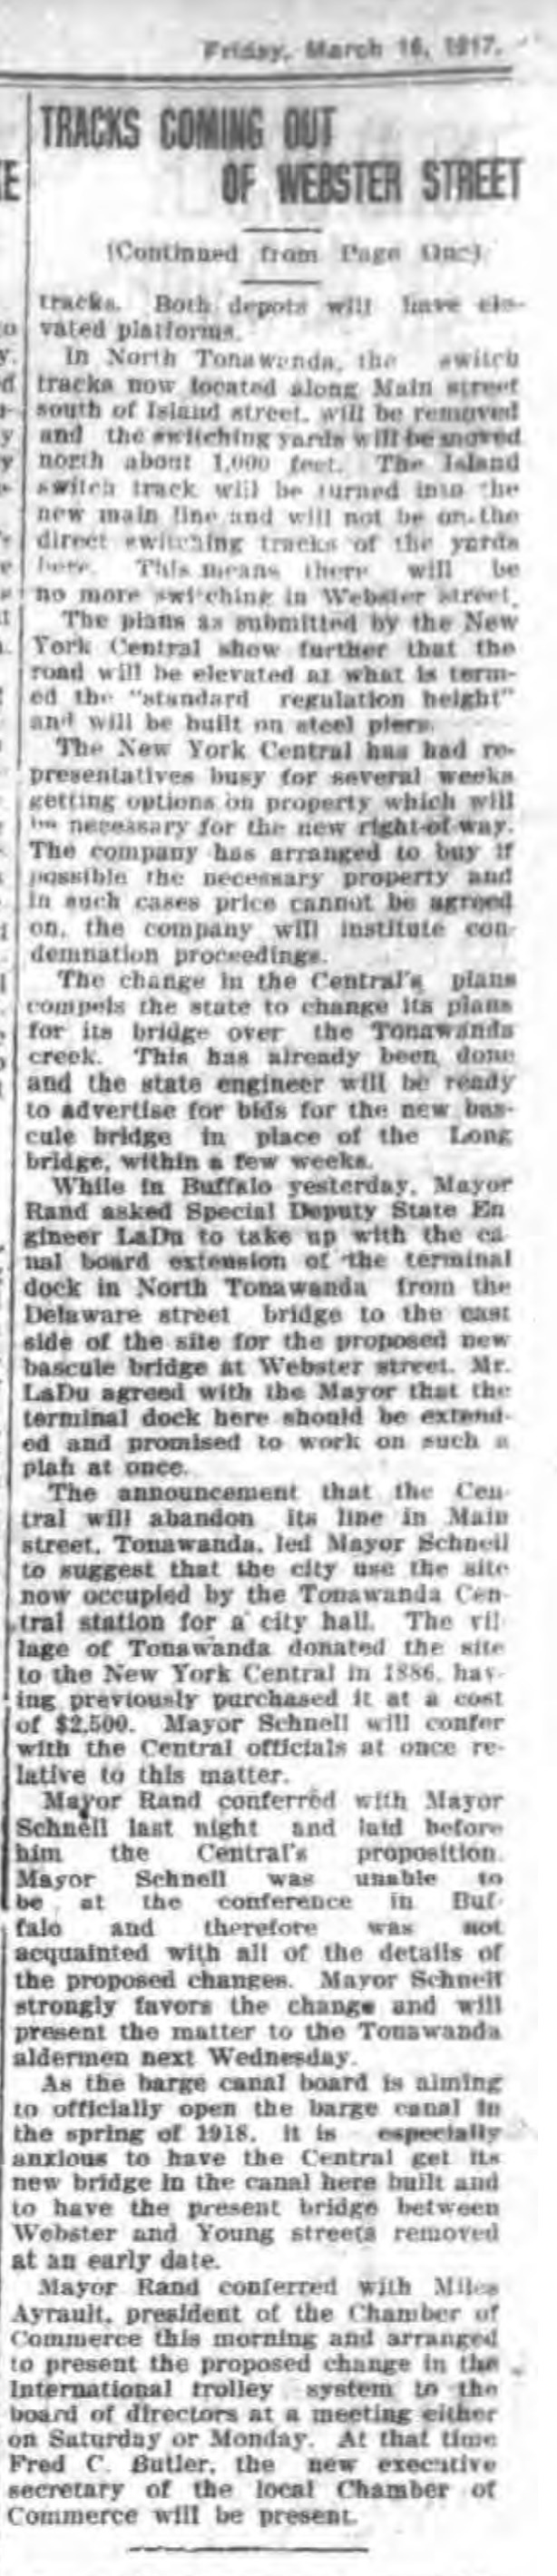 Tracks coming out of Webster St pt2, article (Tonawanda News, 1917-03-16).jpg